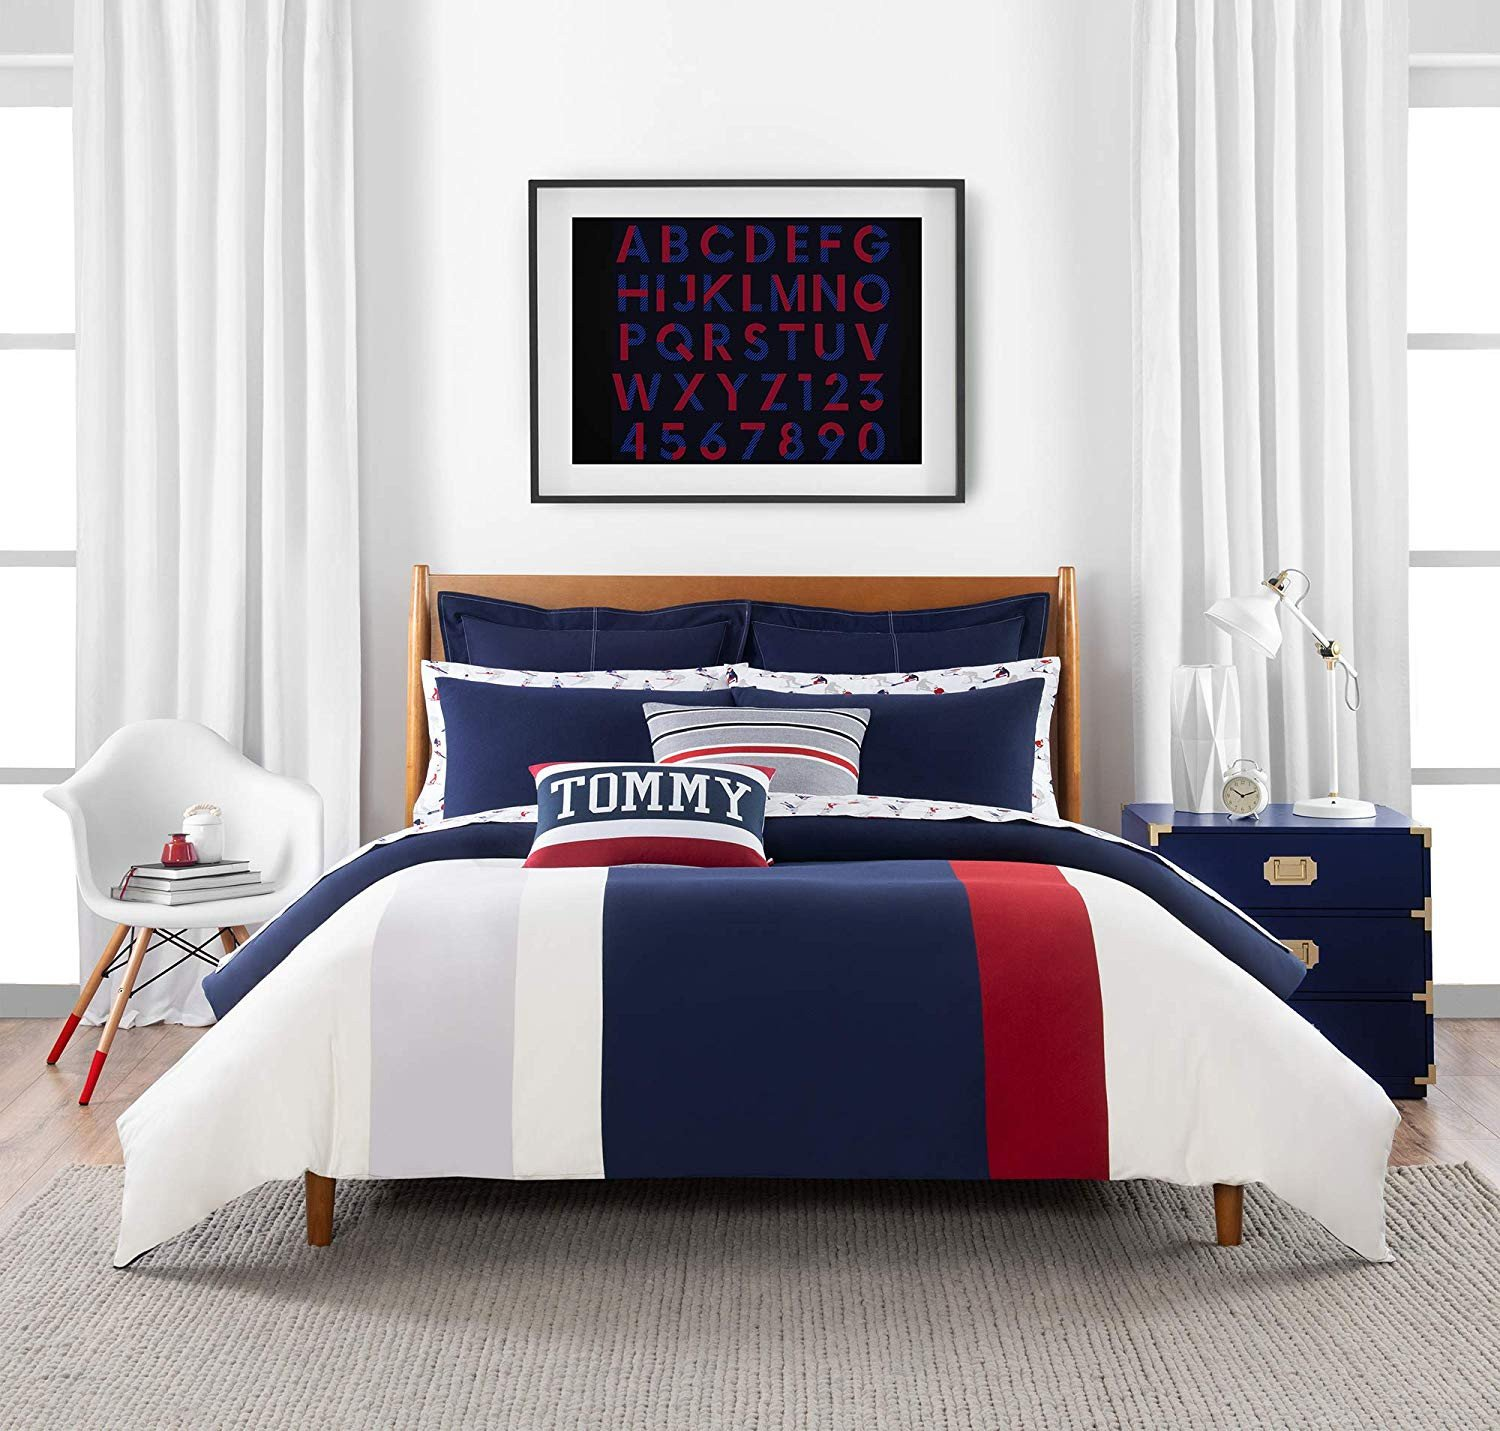 Bedroom Furniture Set King Awesome Amazon tommy Hilfiger Clash Of 85 Stripe Bedding